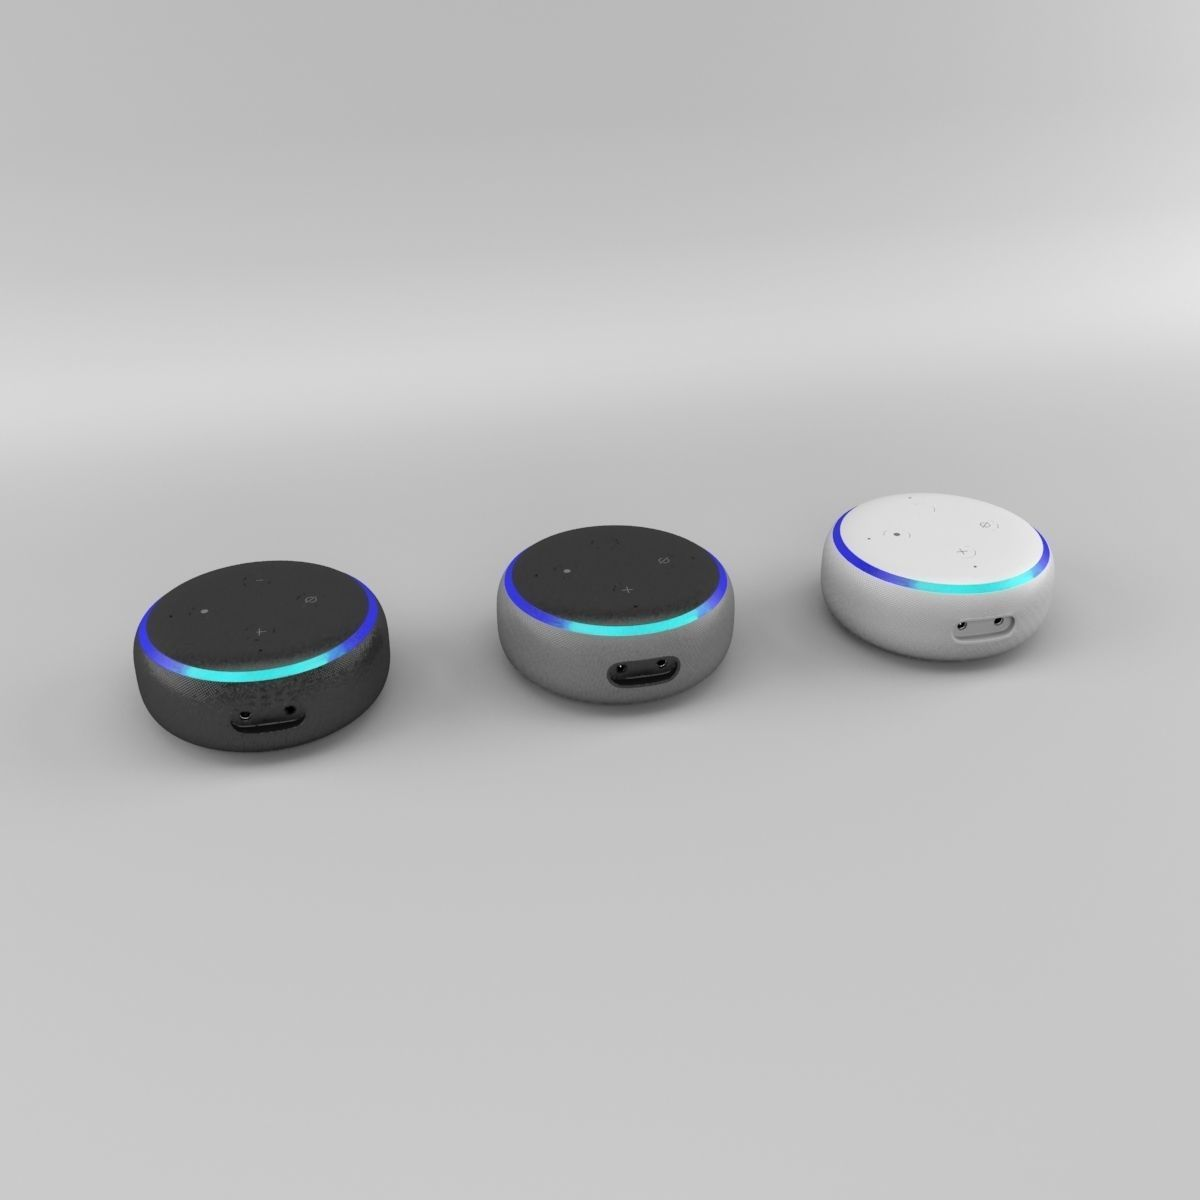 Amazon Echo Dot 3rd Generation 2018 - All Colors